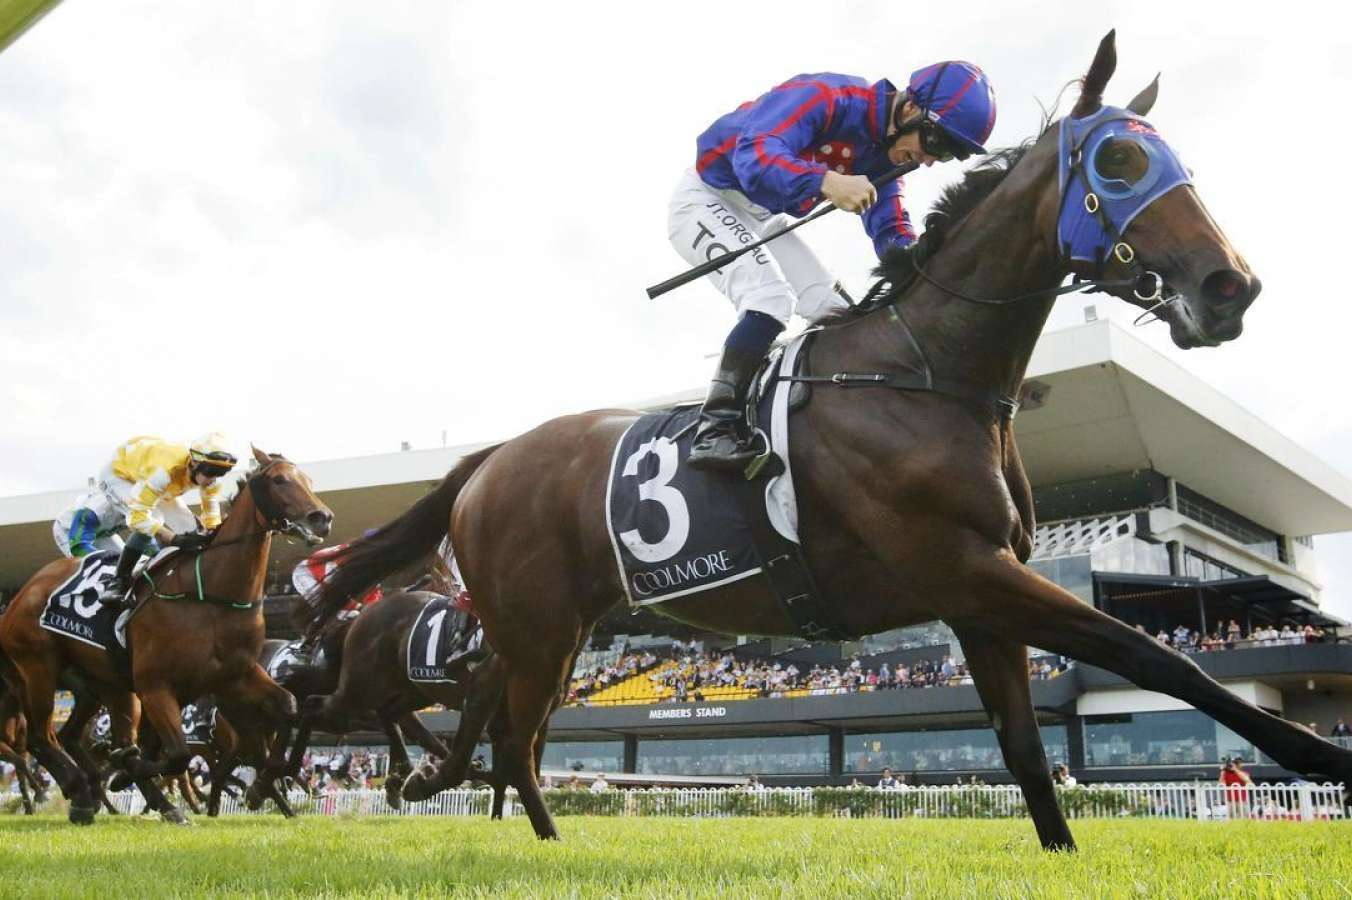 Krone wins Group 1 Coolmore Classic